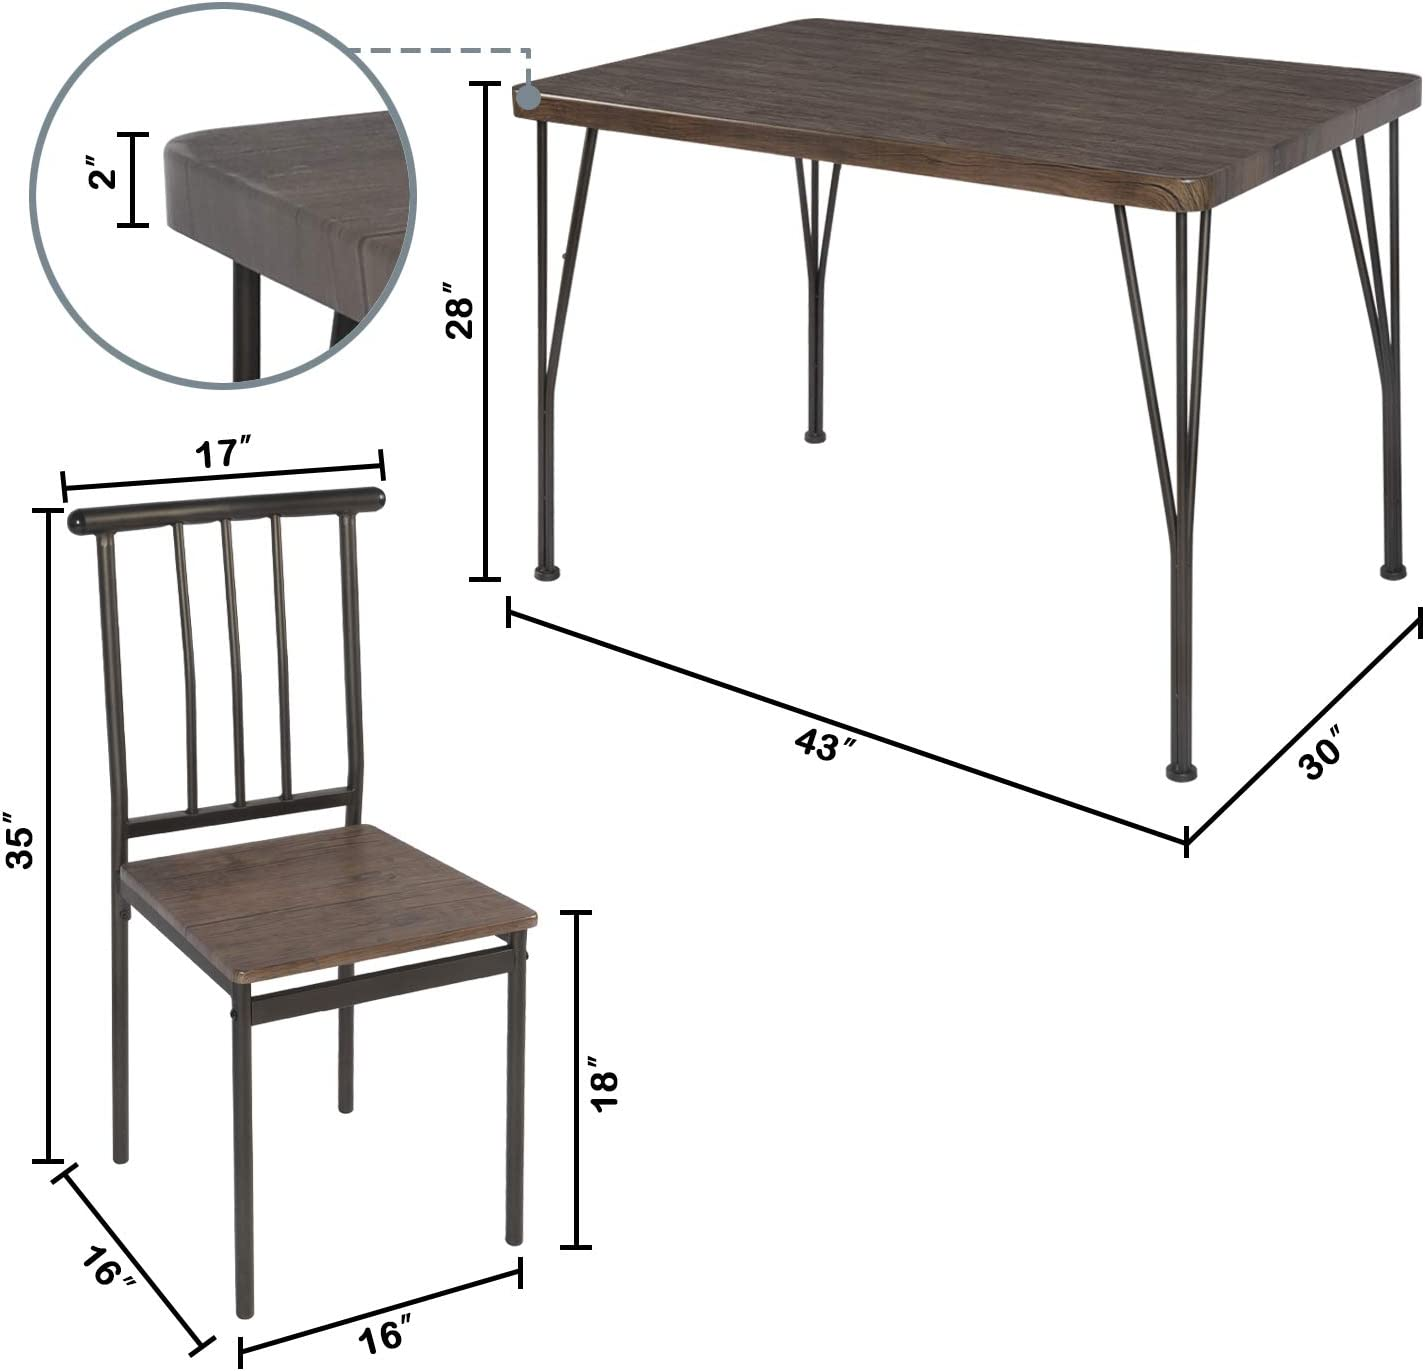 Best for budget: LAZZO 5 Piece Dining Table Set